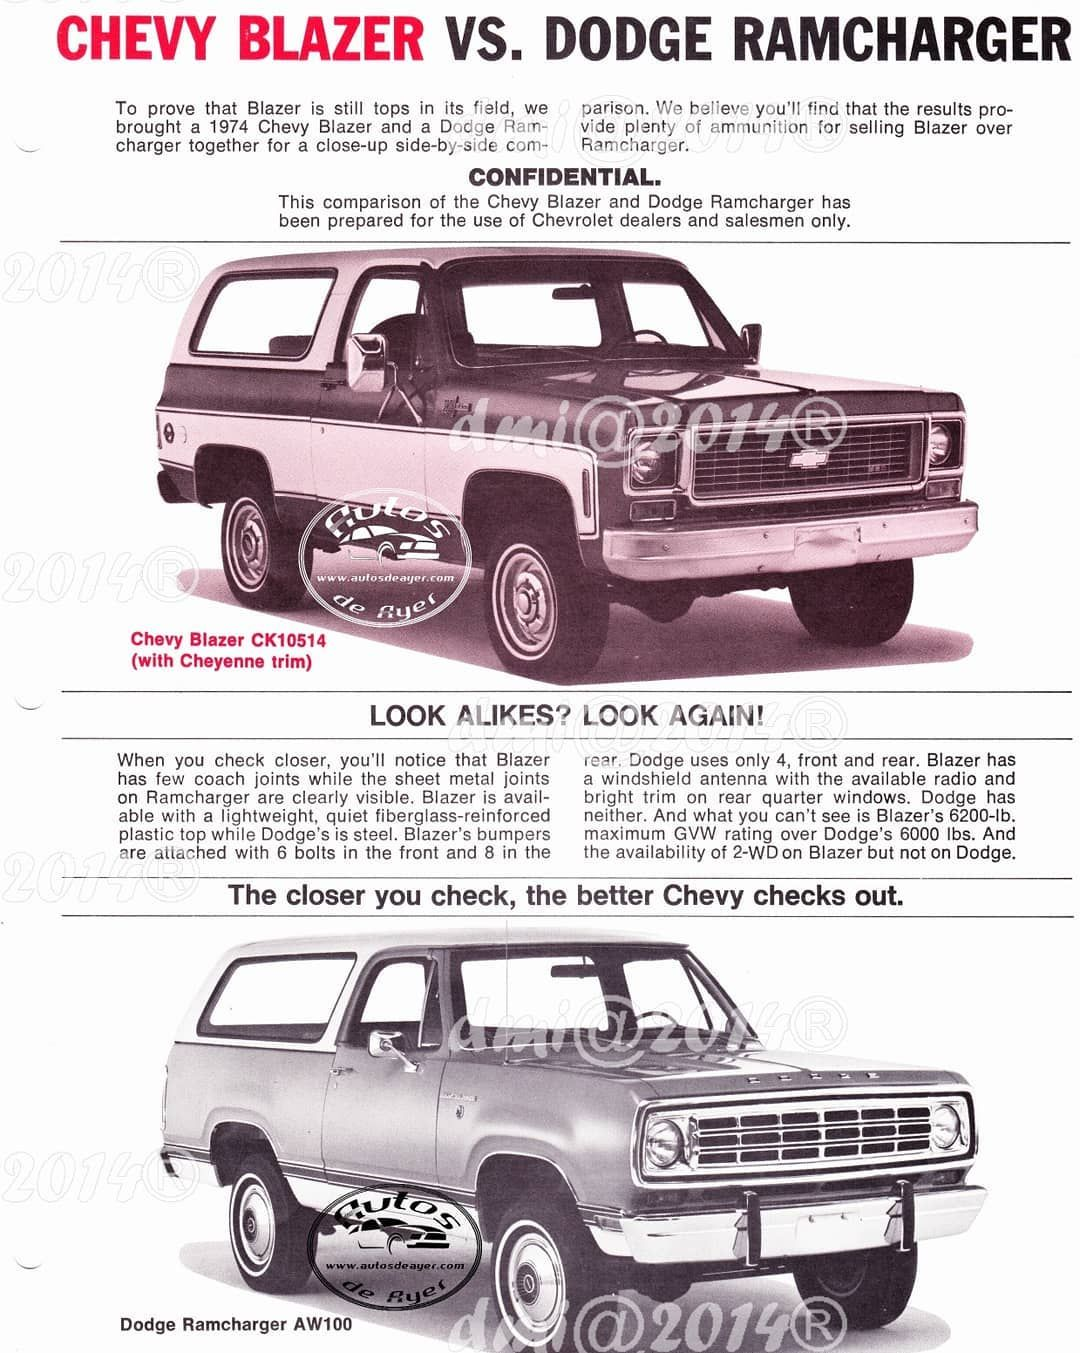 73 Chevrolet Blazer Vs Dodge Ramcharger Material Used For